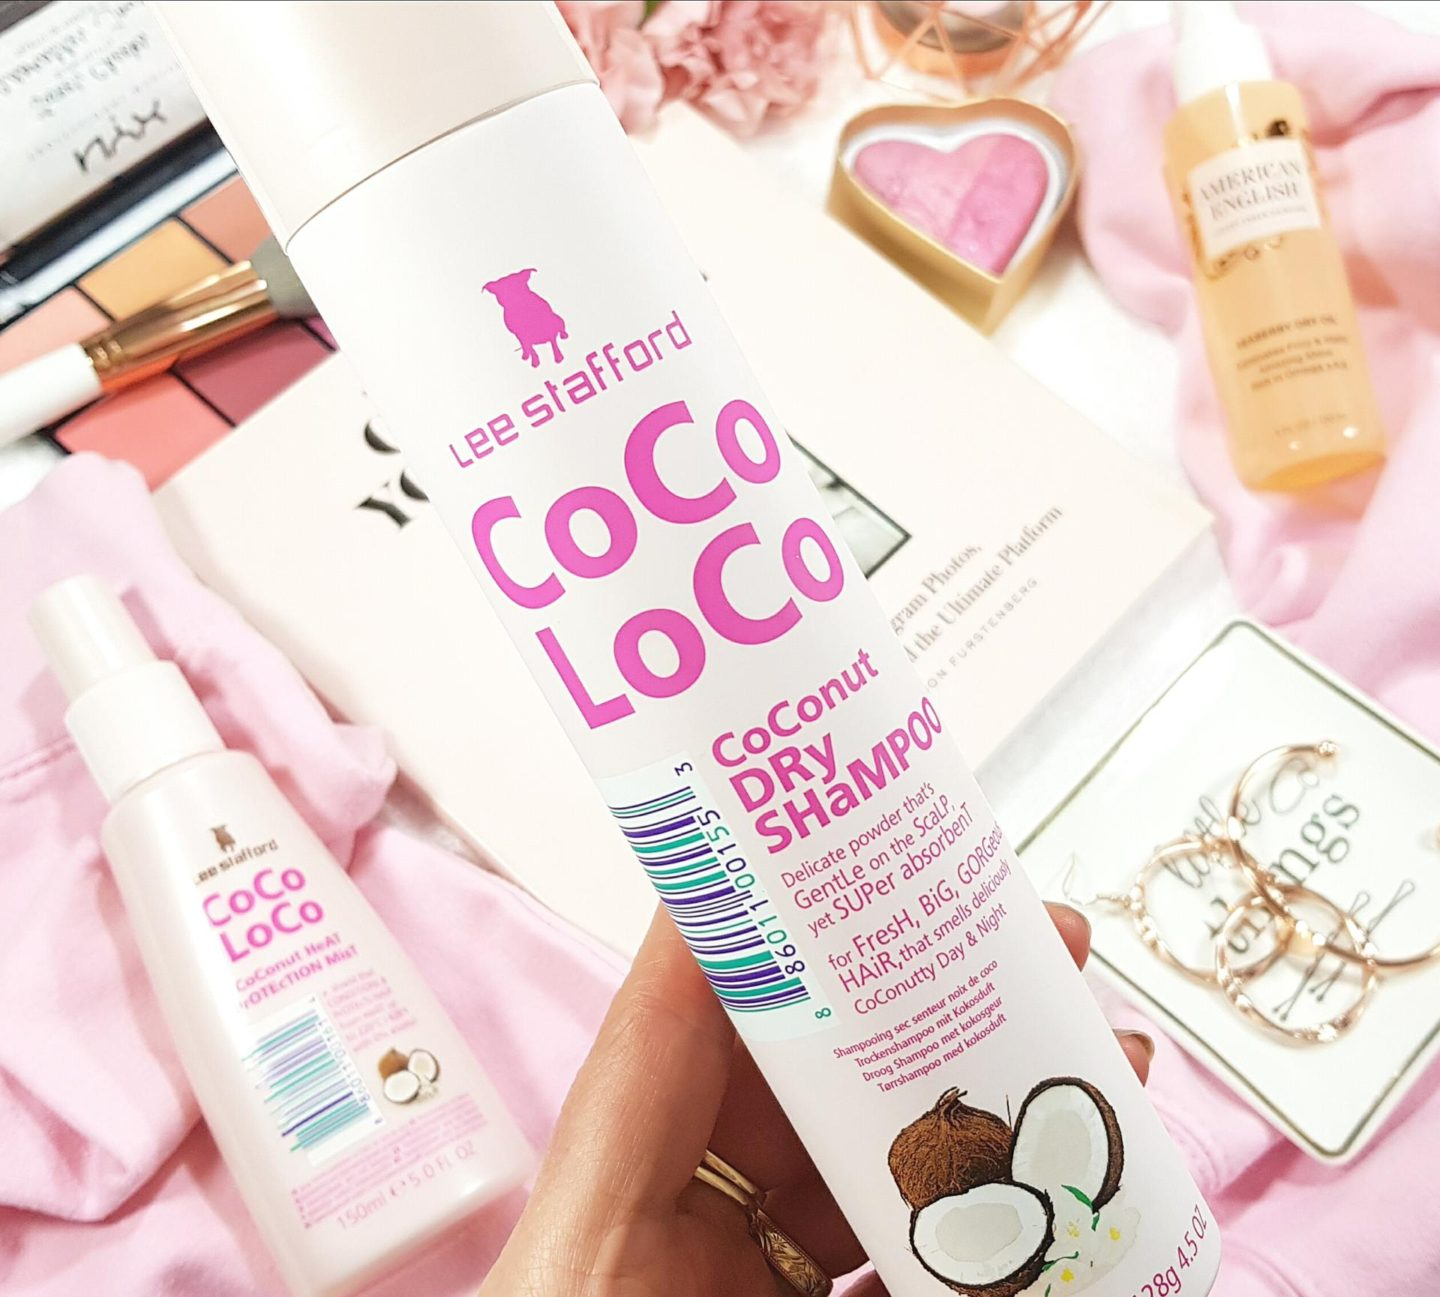 Lee Stafford Coco LoCo Dry Shampoo is one of my hair styling essentials